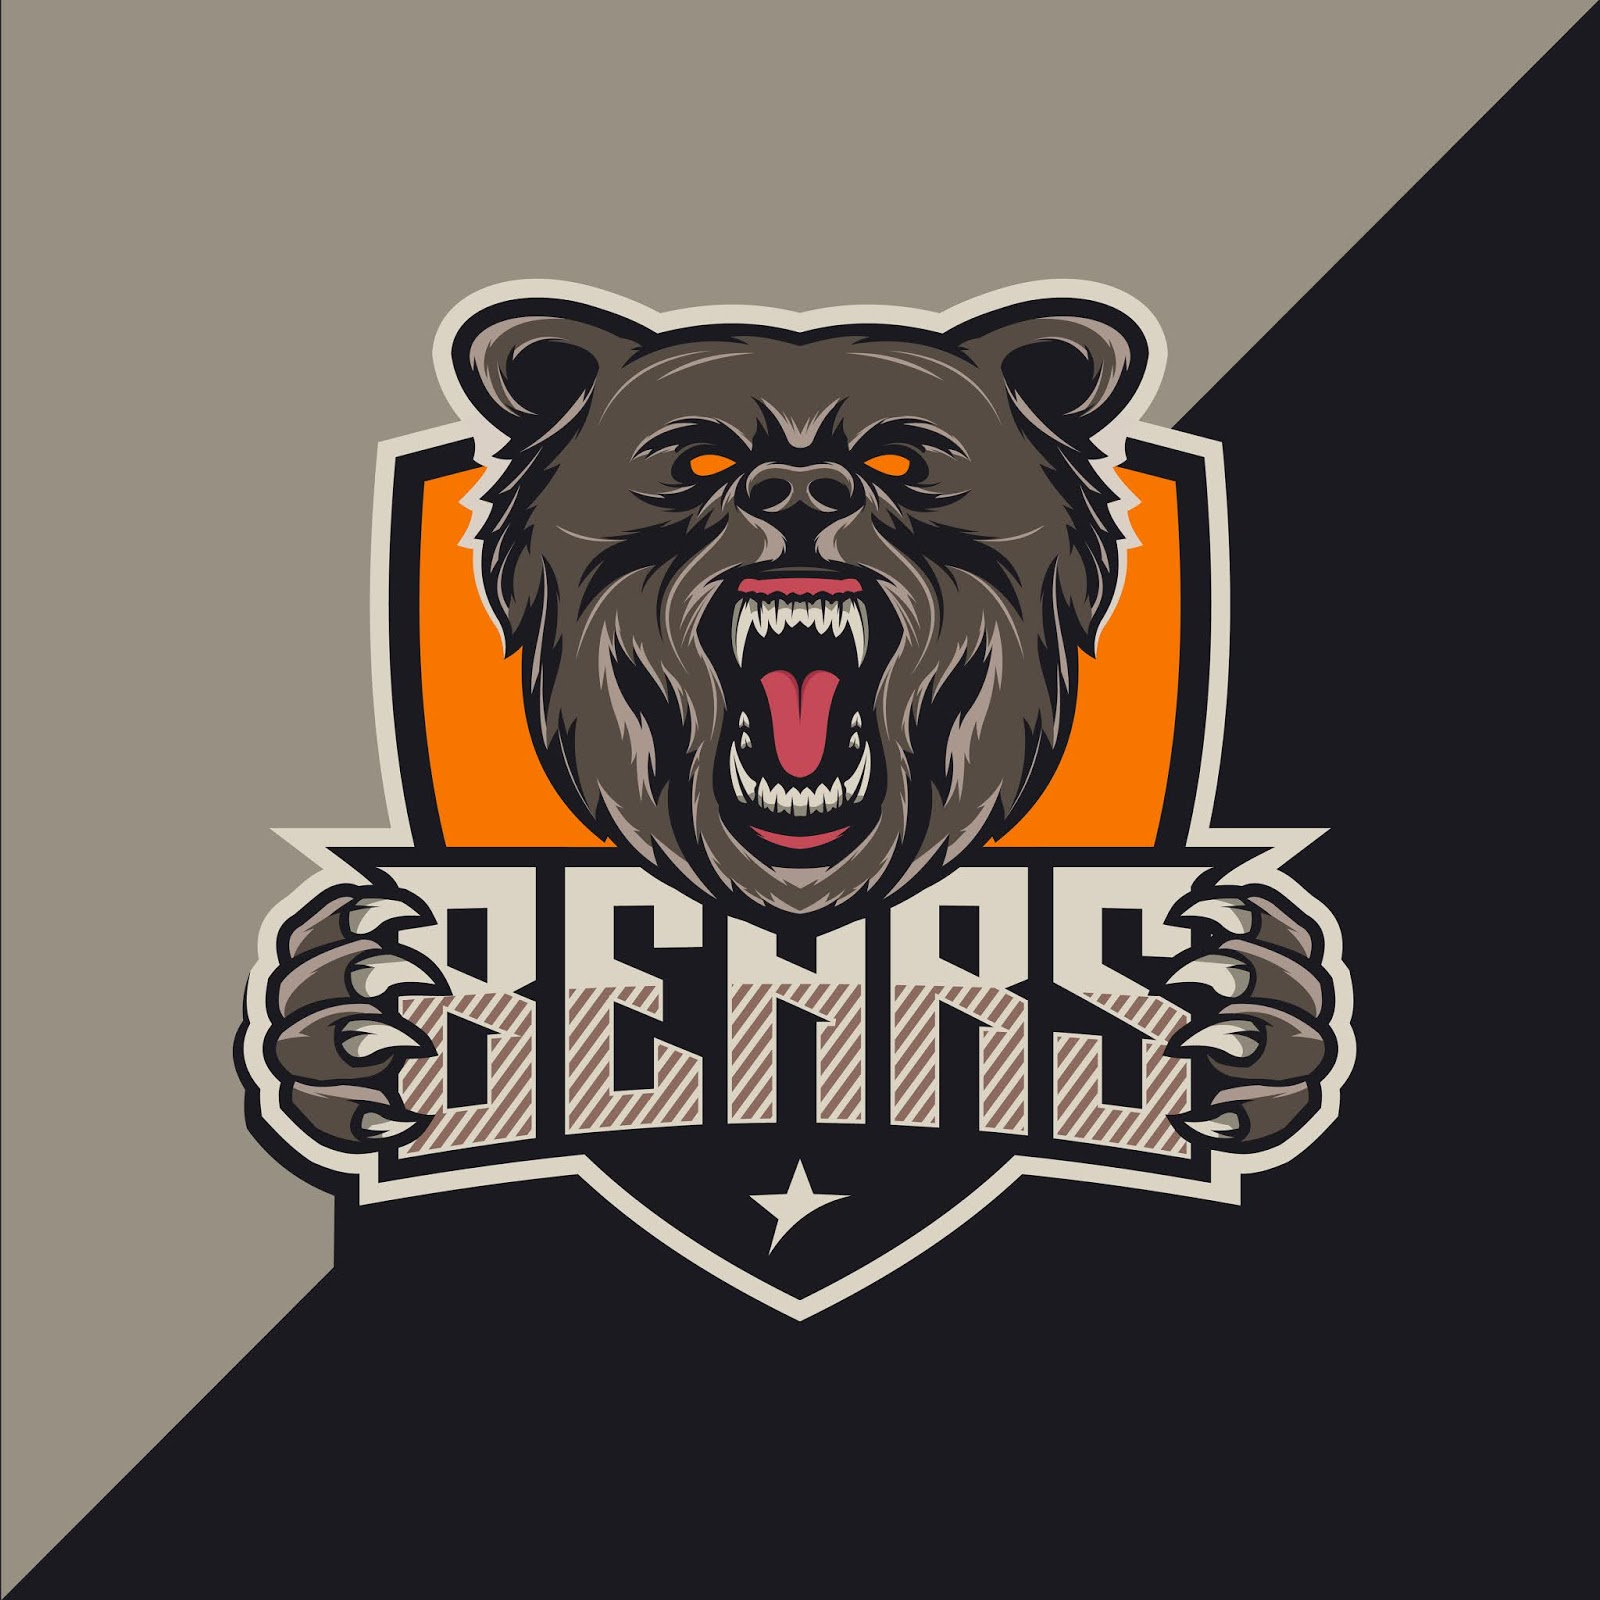 Bears Esport Logo Design Free Download Vector CDR, AI, EPS and PNG Formats